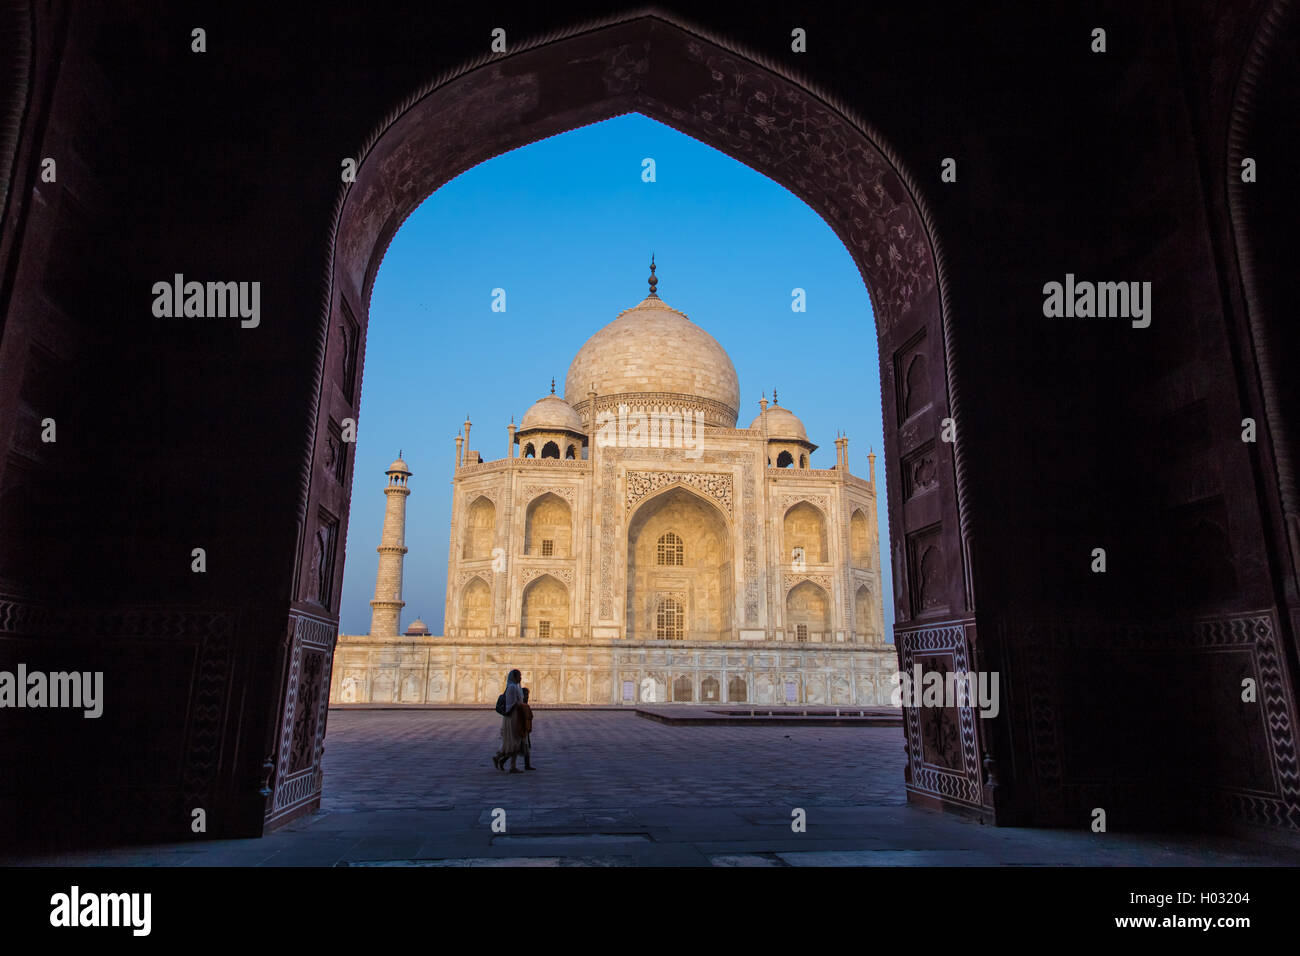 AGRA, INDIA - 28 FEBRUARY 2015: View of Taj Mahal from inside Mihman Khana with people passing by. East side of - Stock Image